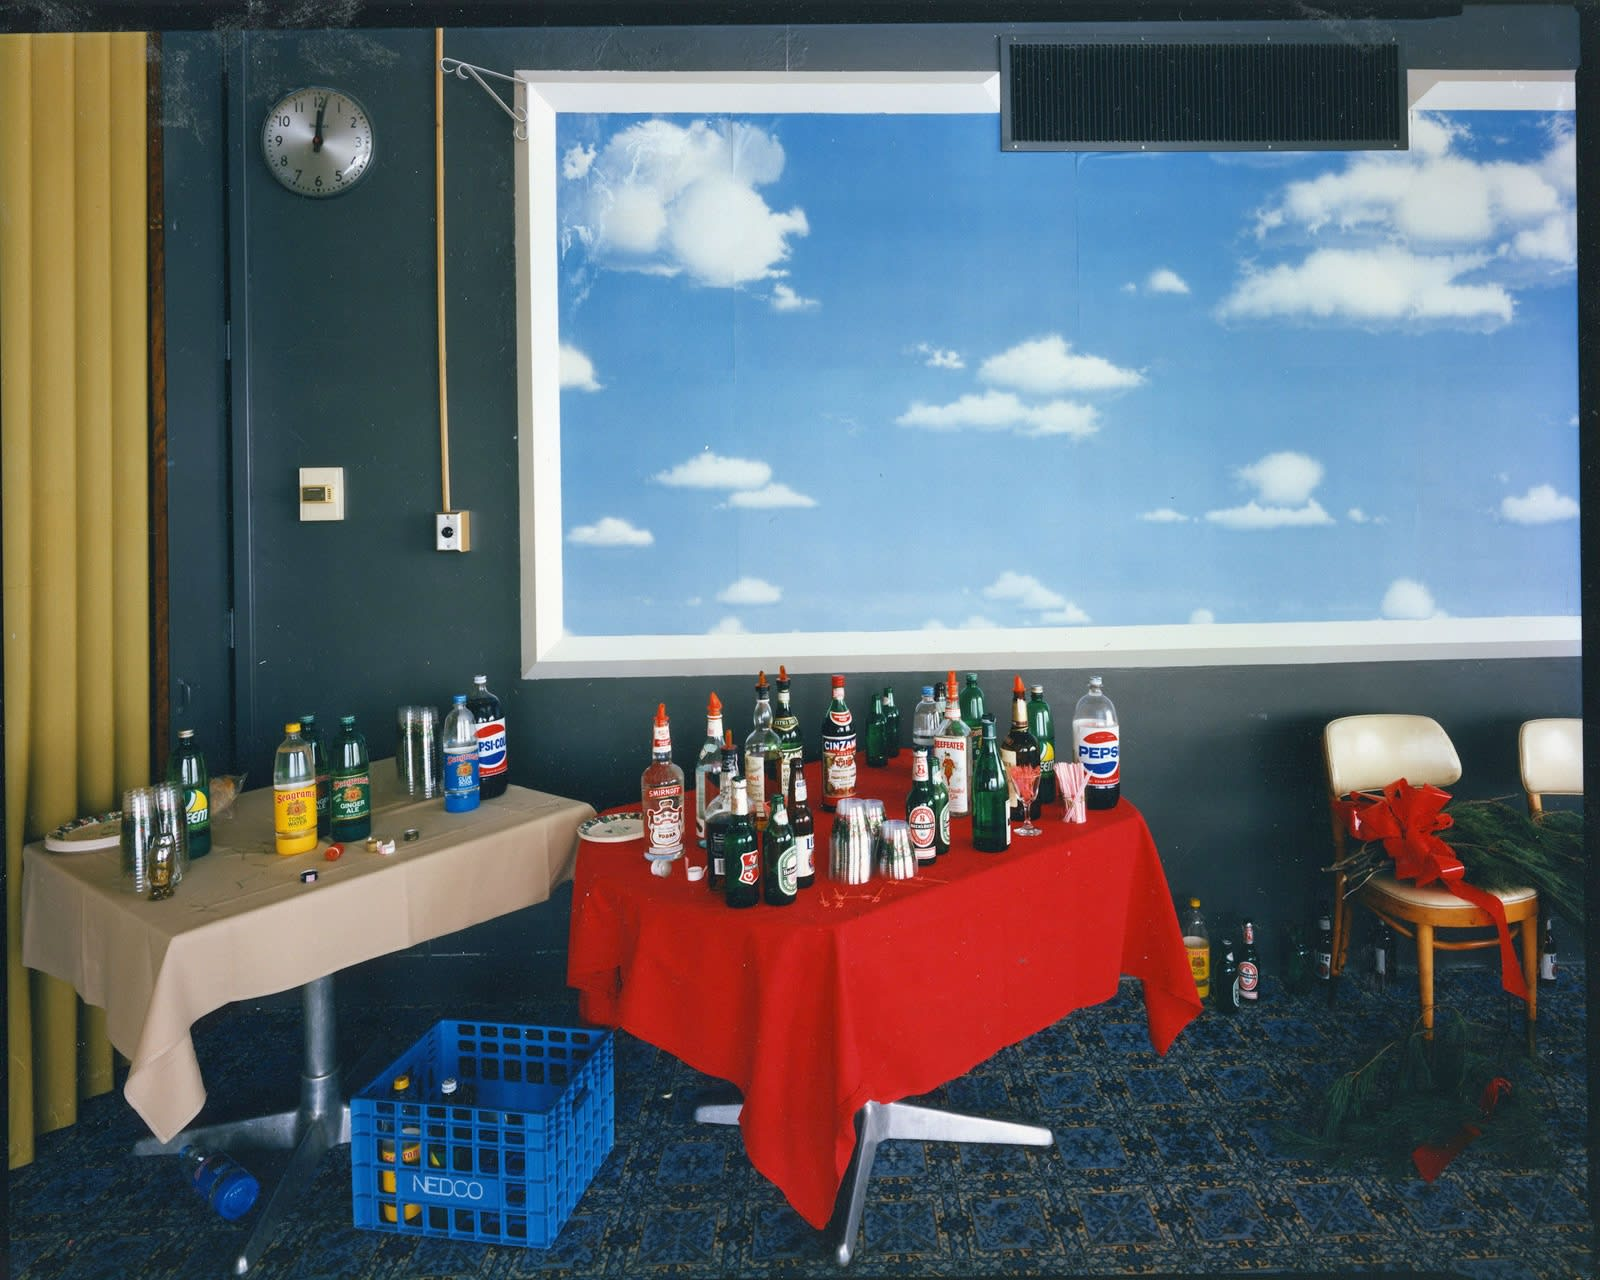 Bruce Wrighton, Framed clouds with blue sky, over 2 tables with soda/liquor bottles (red and tan tablecloths)